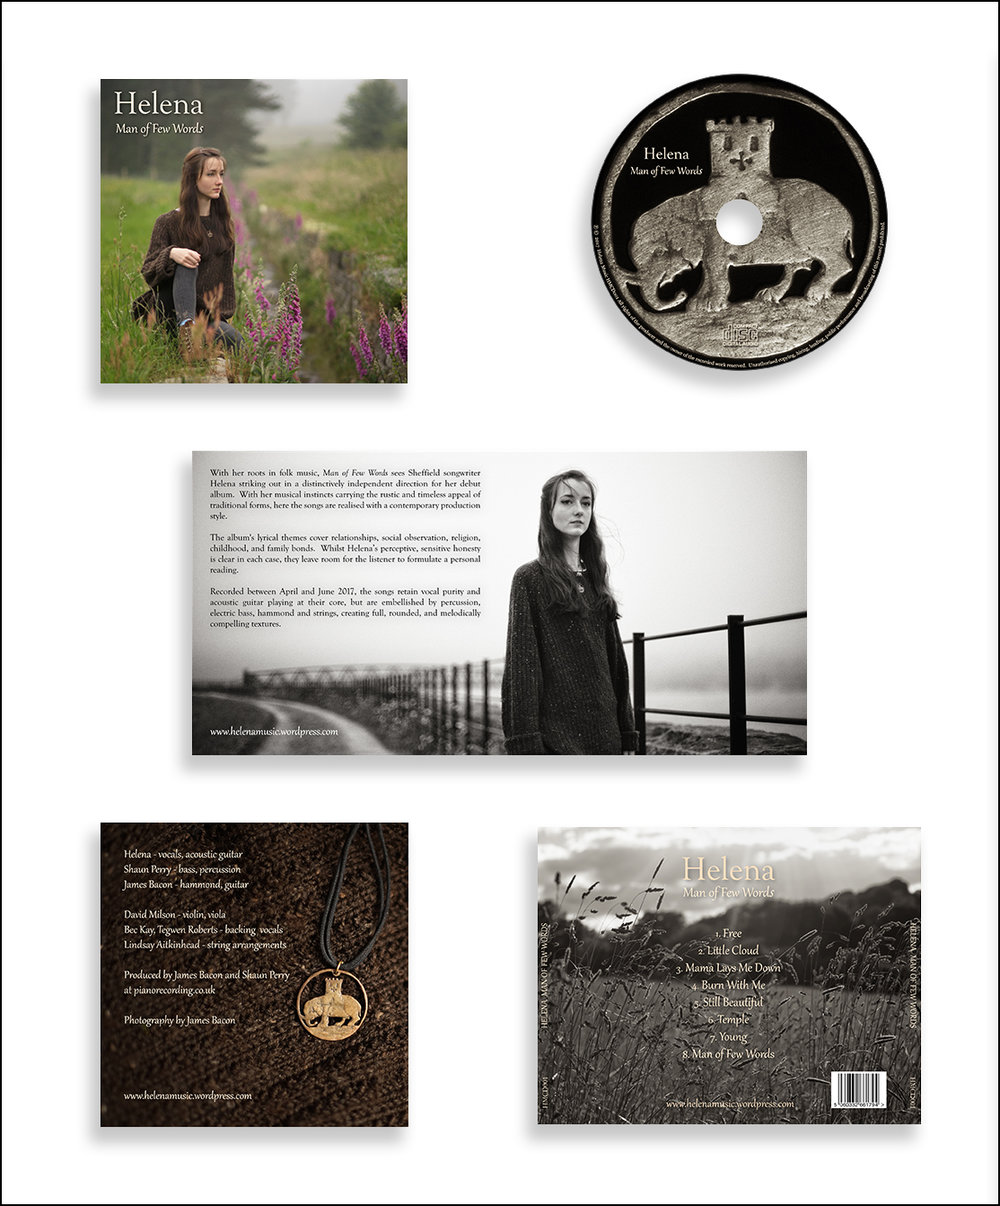 Helena CD design, 4 page booklet